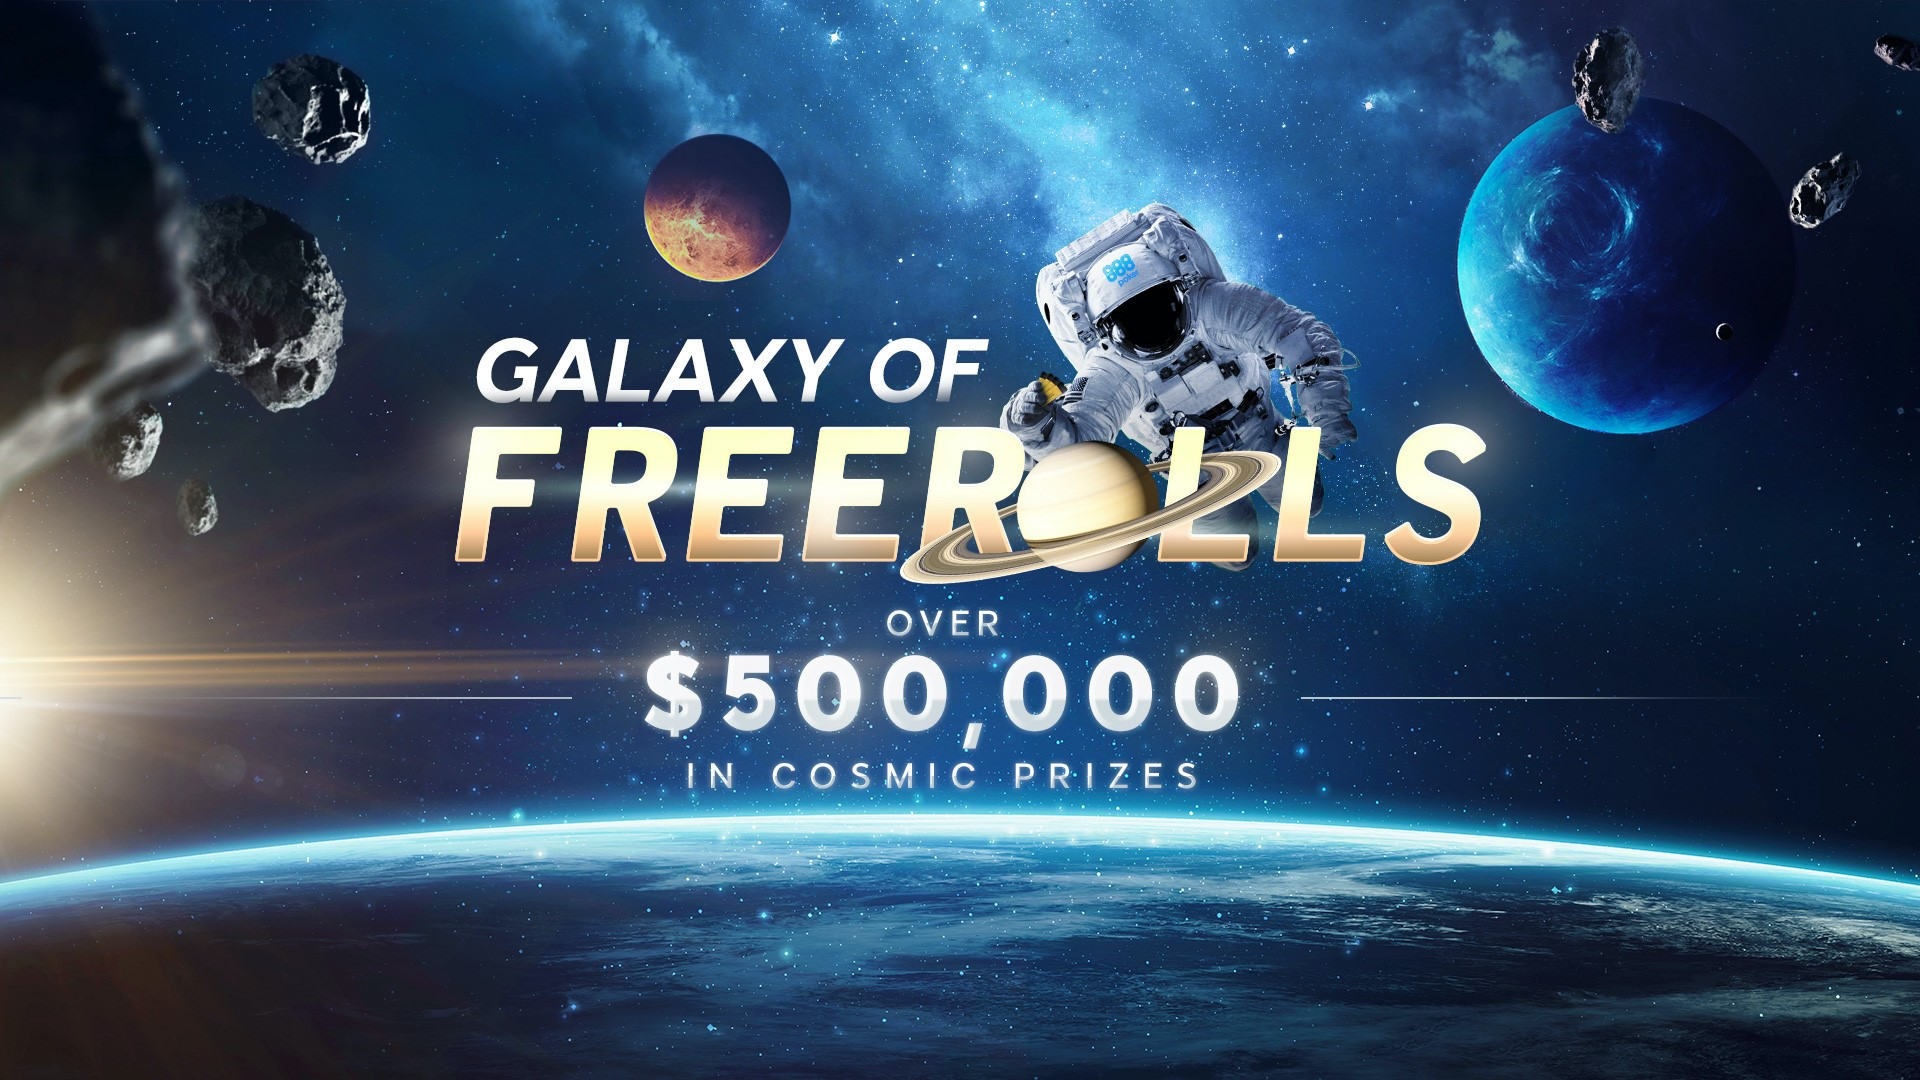 888poker Latest Promo - Galaxy of Freerolls